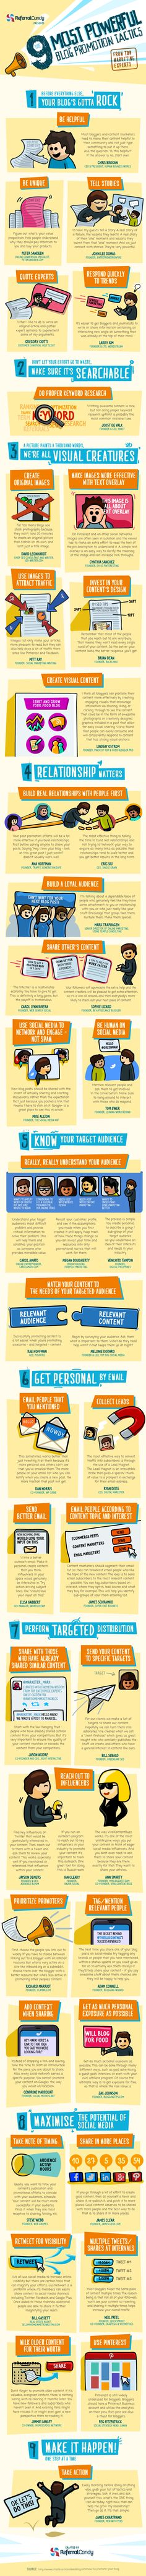 It's about content, style and value more than SEO We like this infographic which has been created with newcomers to blogging in mind. It practices what it. Marketing topic(s):Business blogging. Advice by Susanne Colwyn.